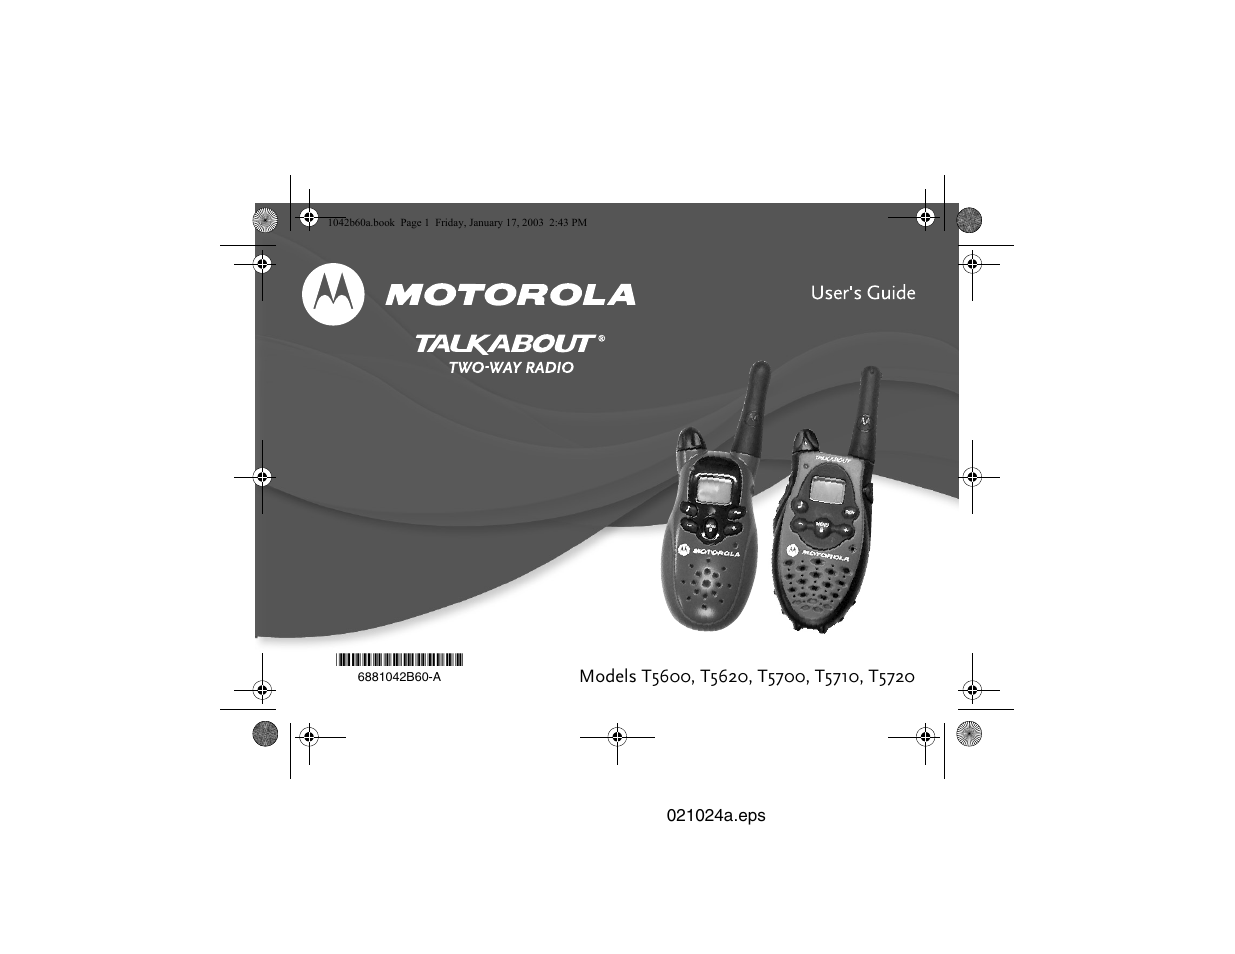 motorola t5620 user manual 33 pages also for t5700 t5720 t5600 rh manualsdir com Alcatel One Touch Manual Alcatel One Touch Manual